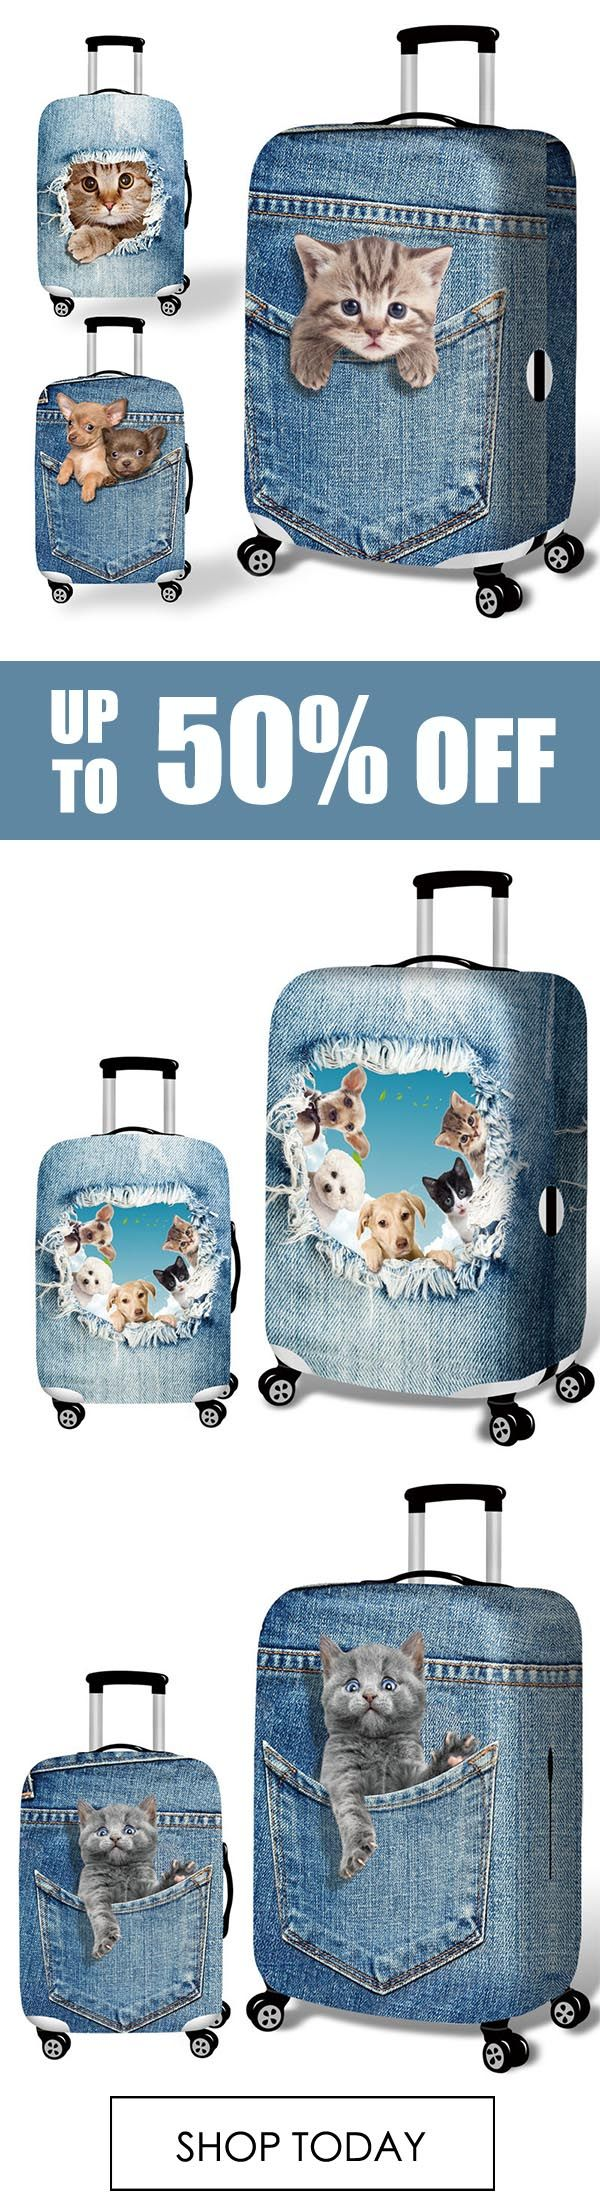 3D Cute Cat Dog Elastic Luggage Cover Trolley Case Cover Durable Suitcase Protector for 18-32 Inch Case Warm Travel Accessories. #travel #animal #art